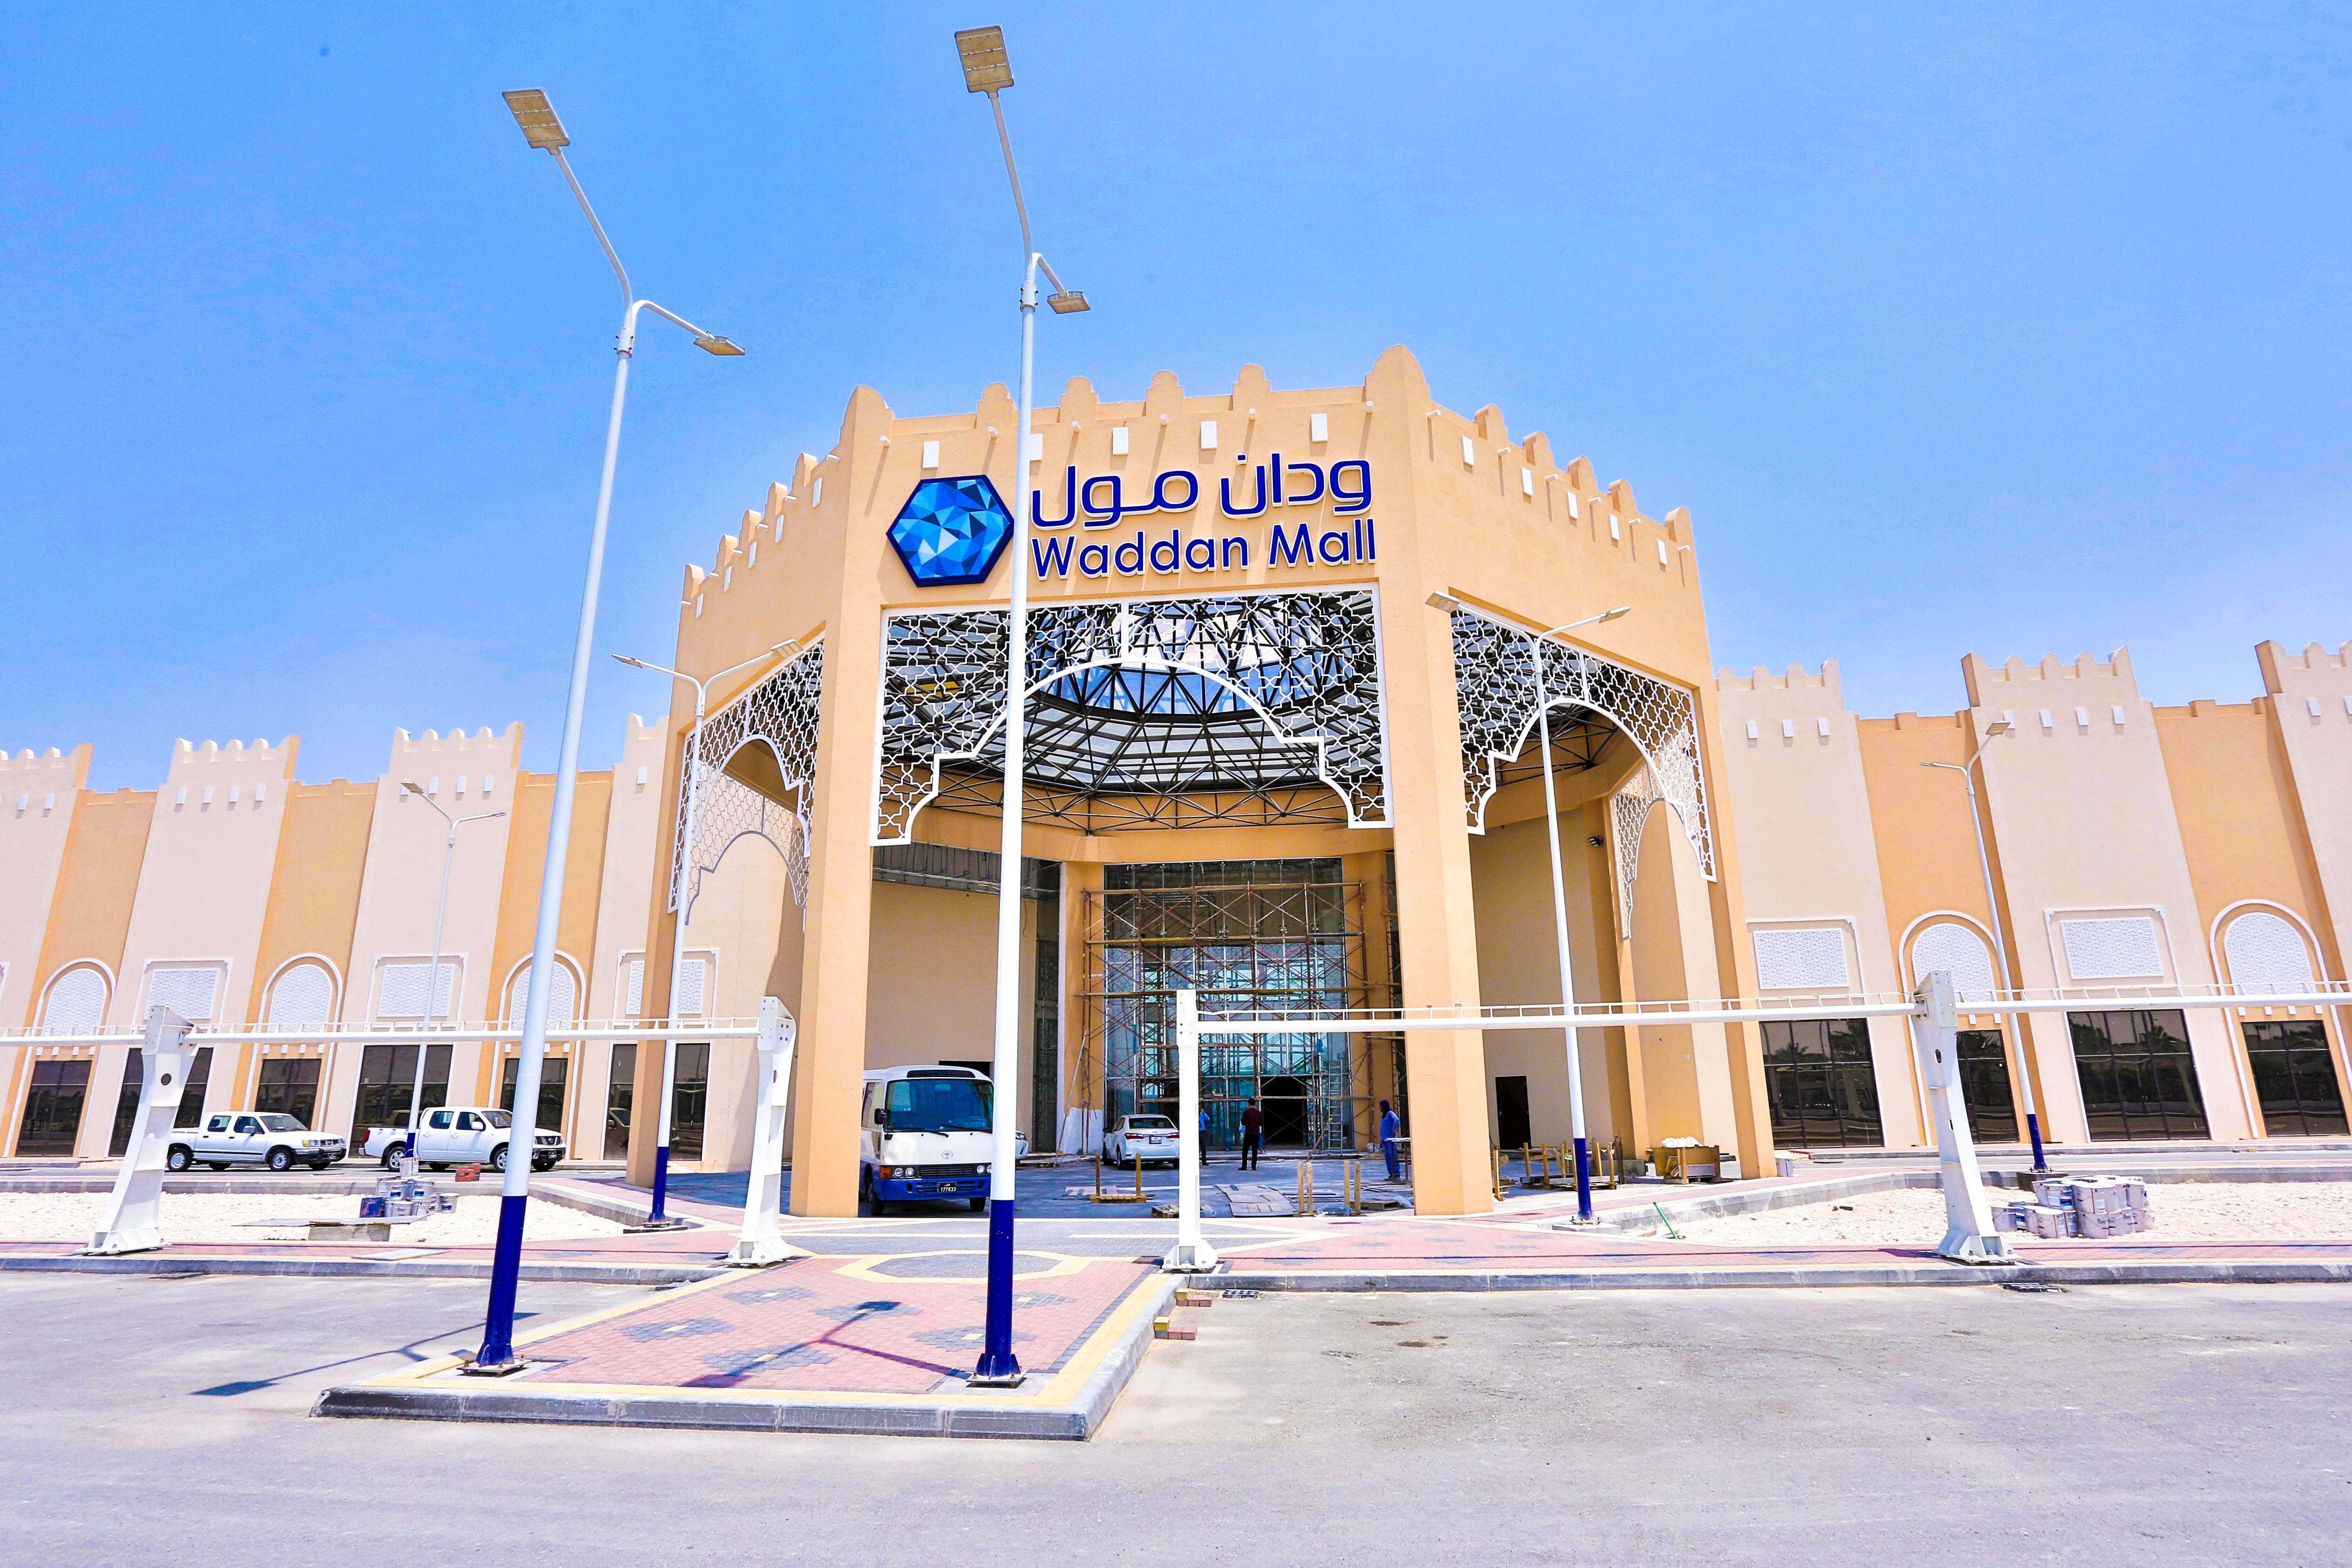 WADDAN MALL – COMPLETED